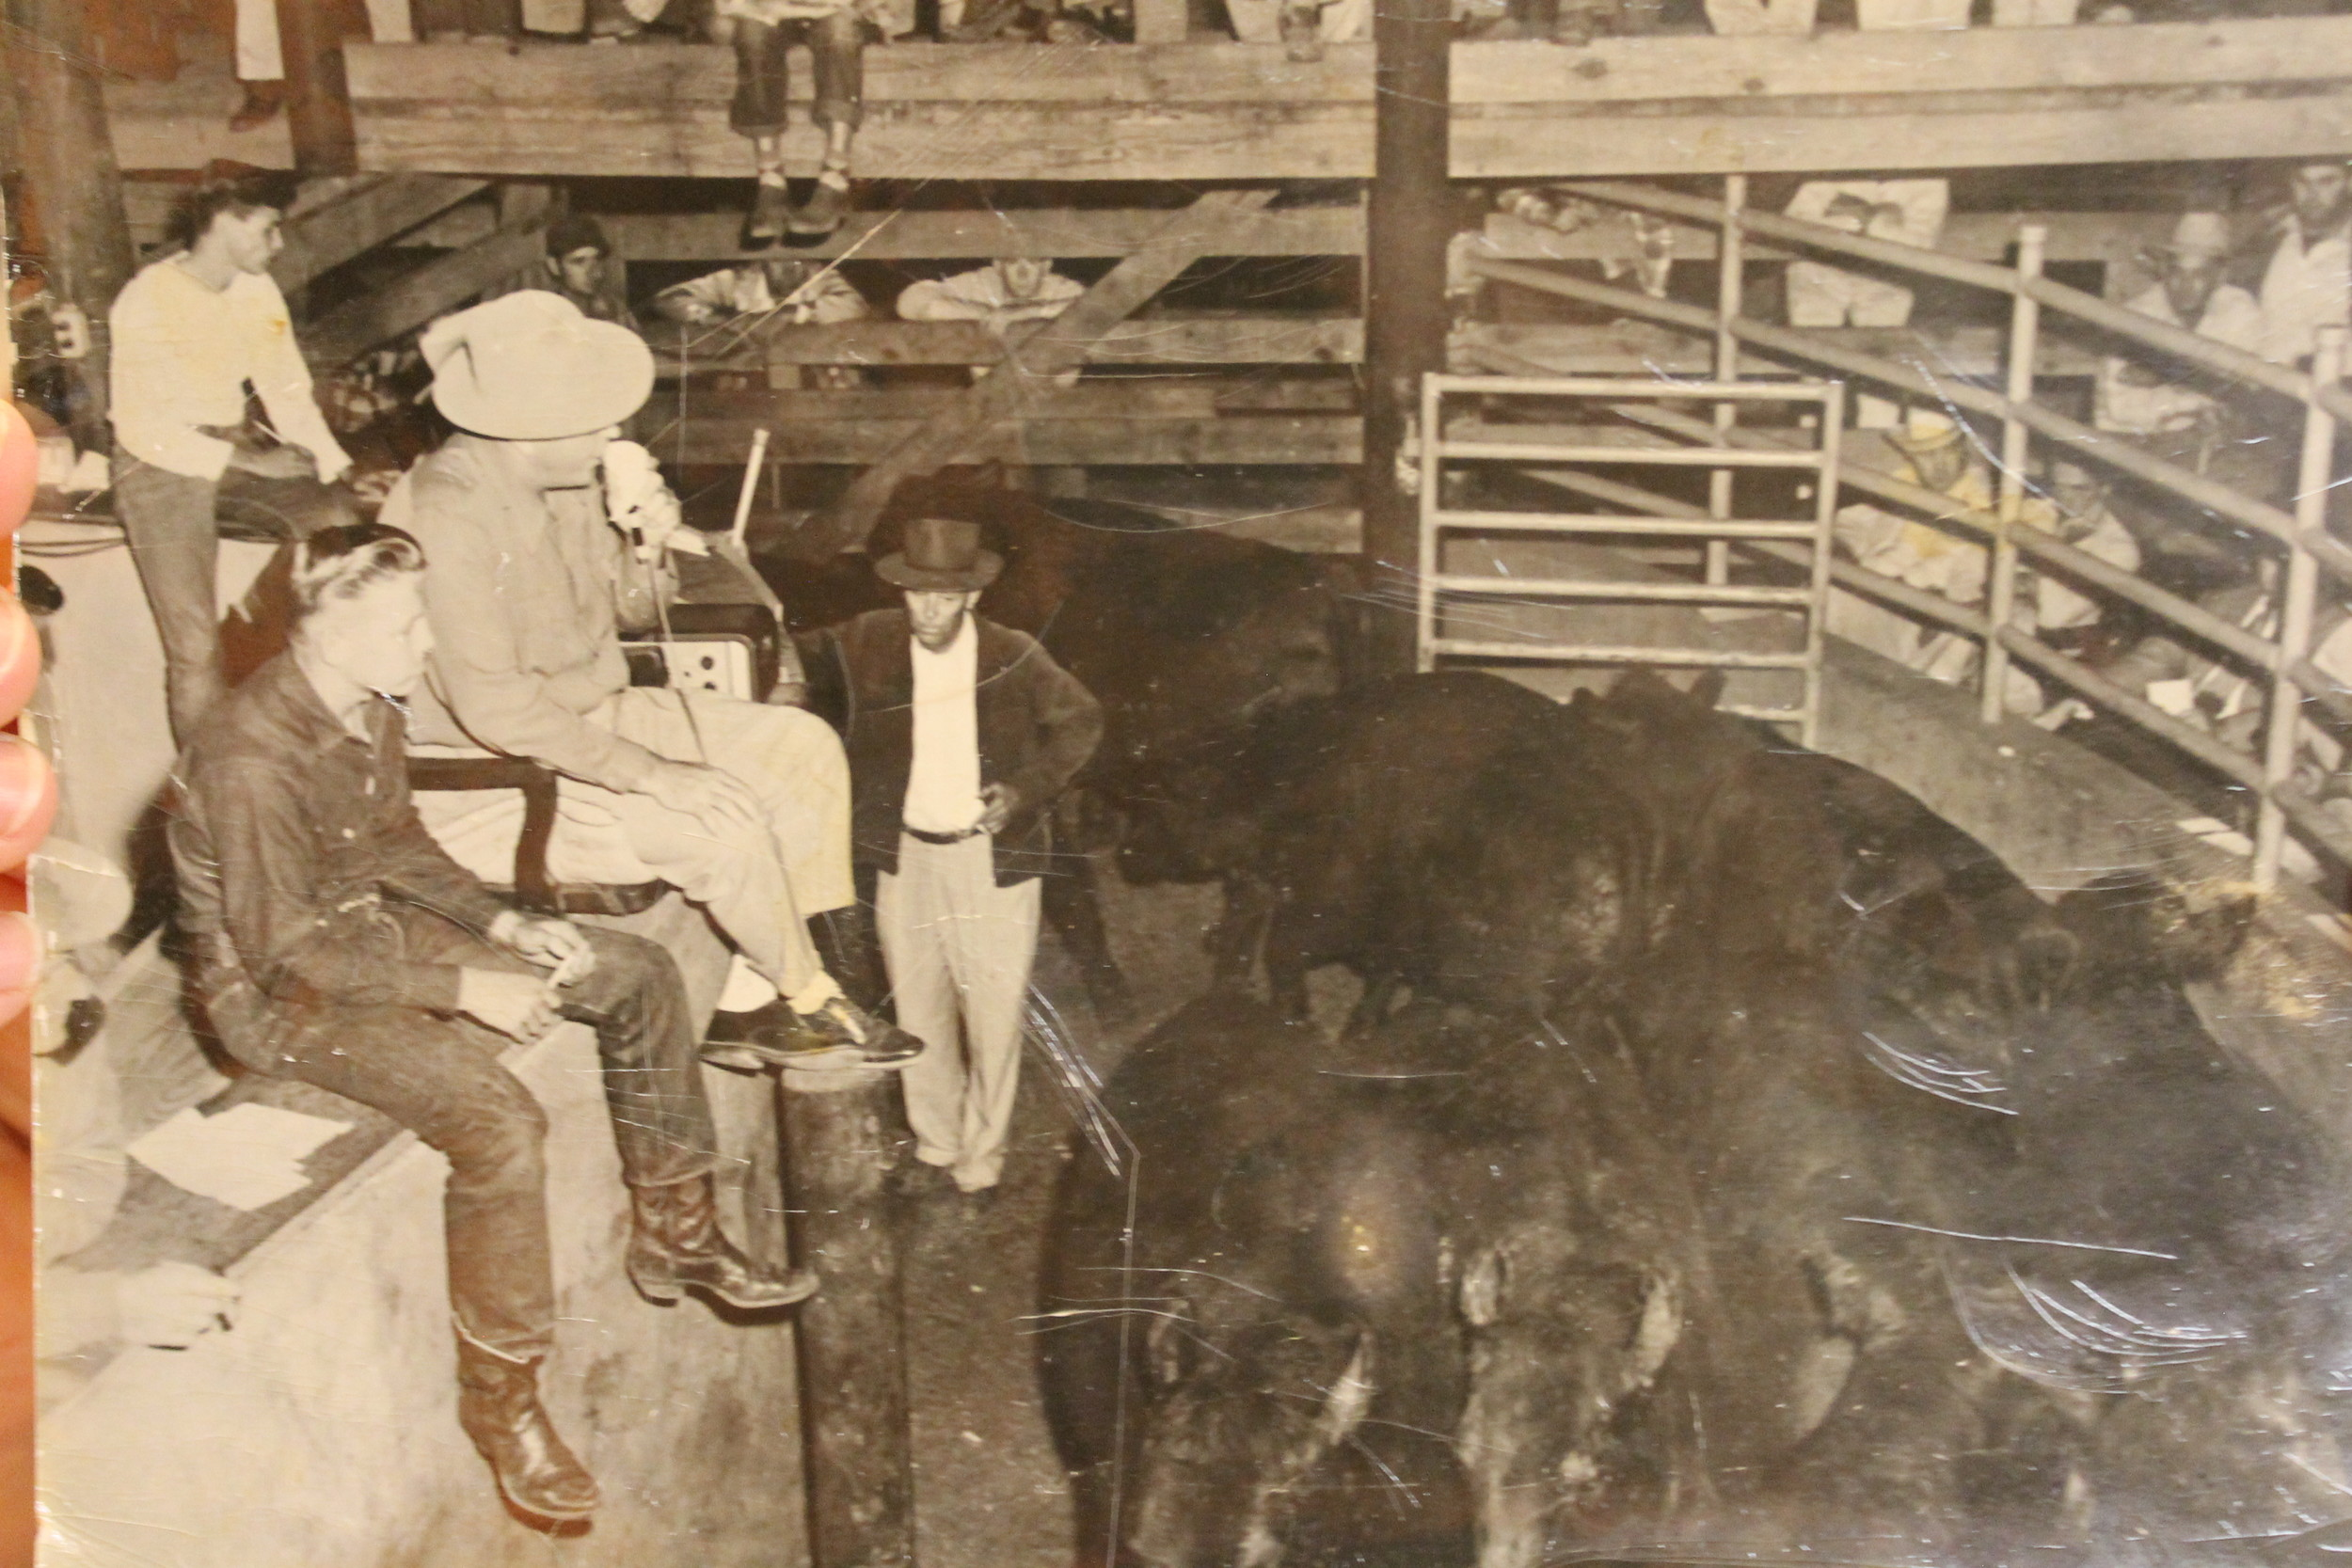 Jimmy Driver began working at the stockyard at age 10. He is seen here sitting above the auction ring on the left.